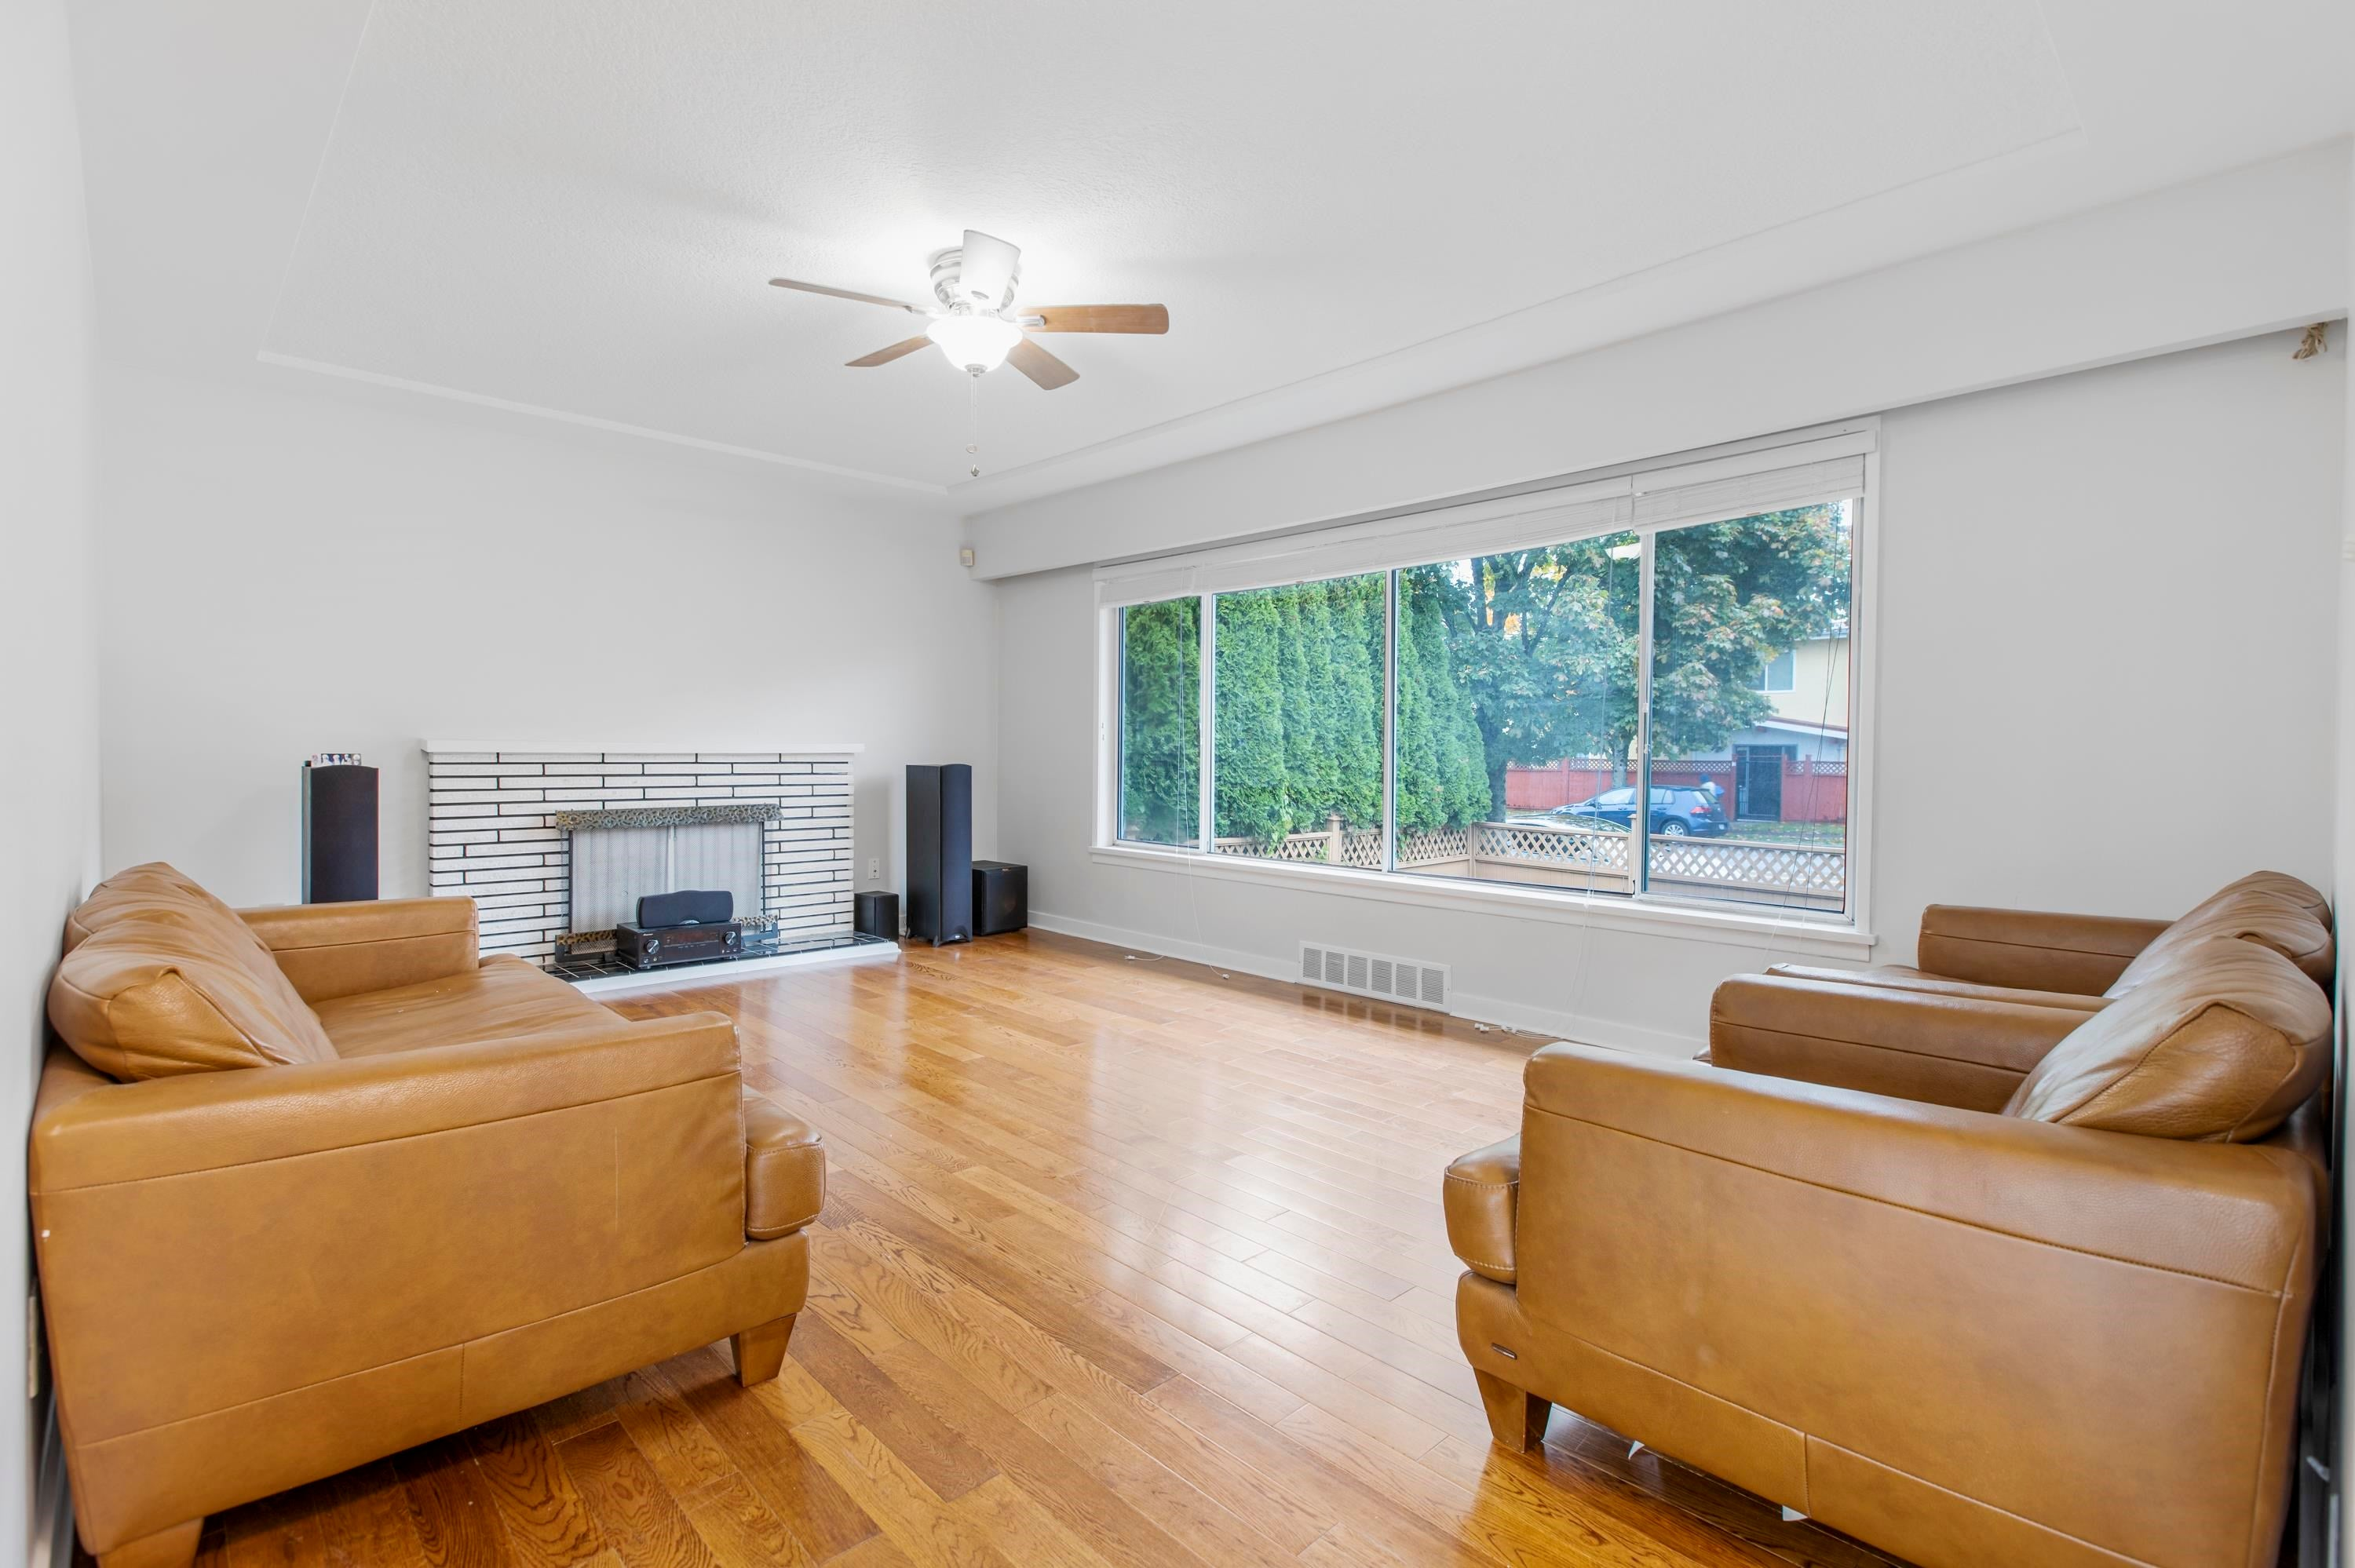 1352 E 57TH AVENUE - South Vancouver House/Single Family for sale, 4 Bedrooms (R2625705) - #8